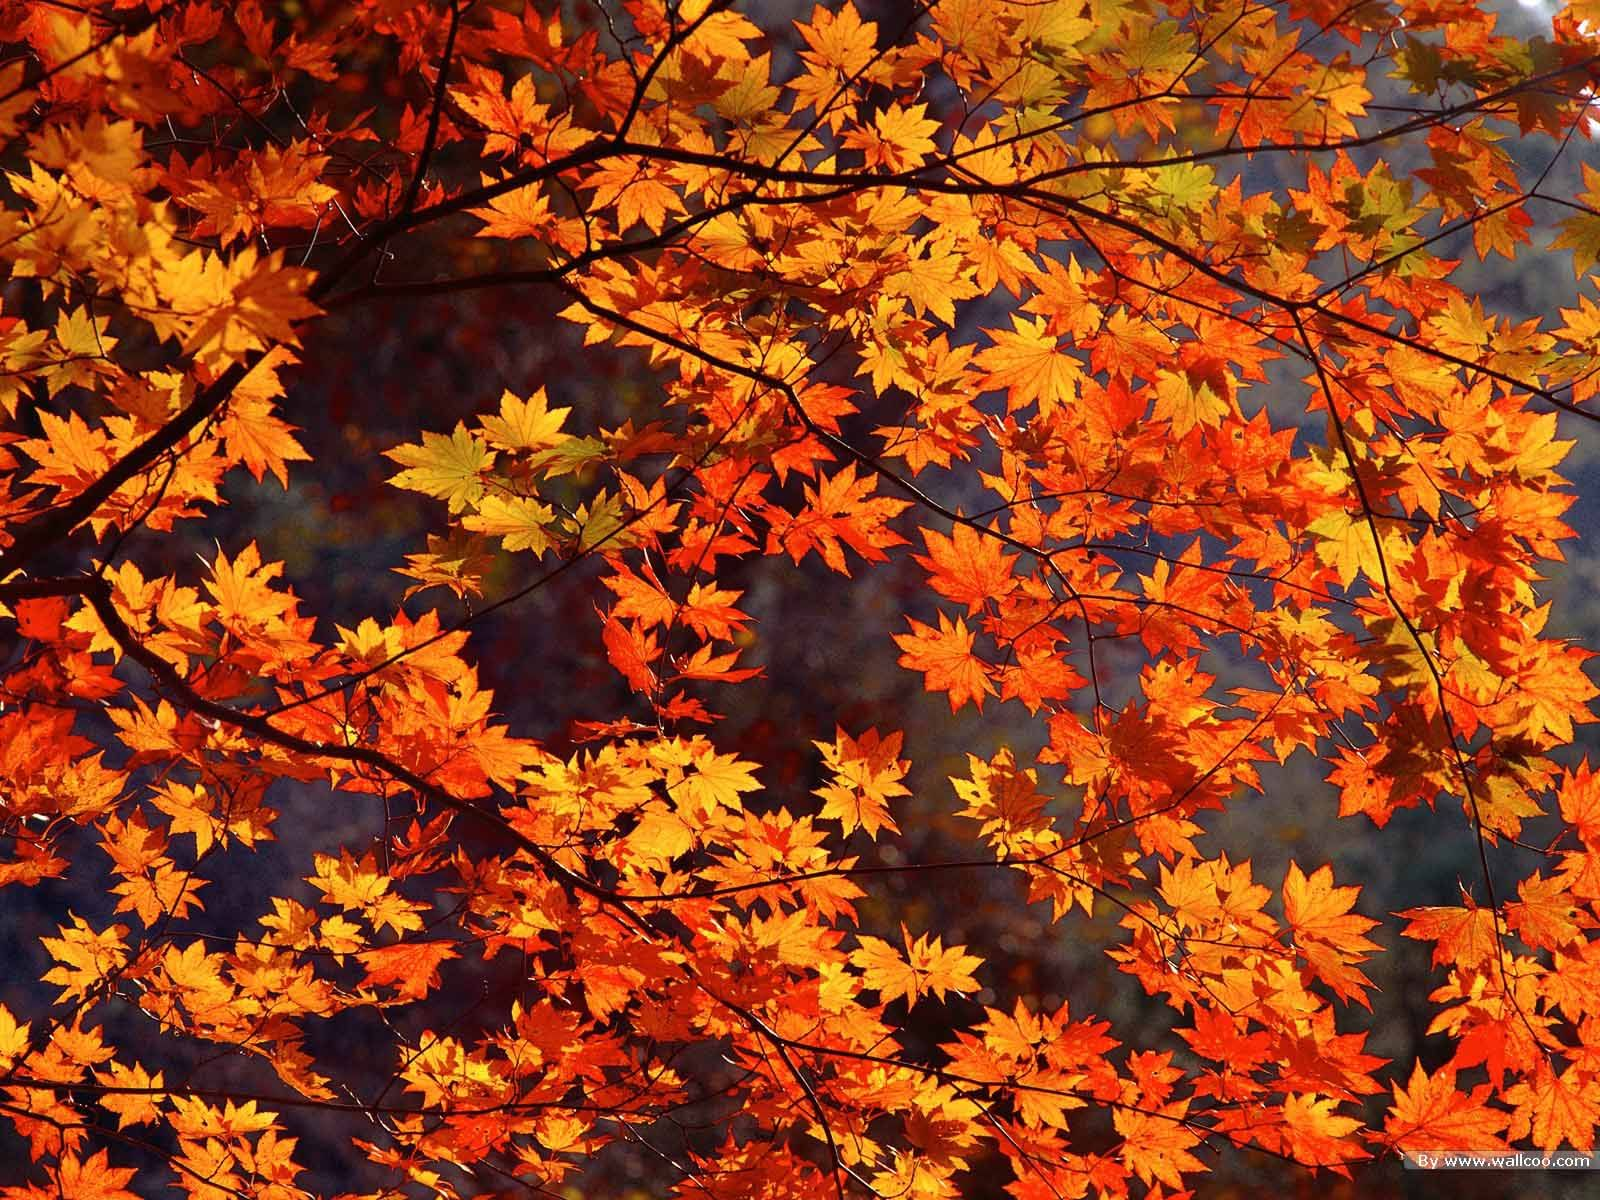 Desktop Backgrounds Fall Wallpaper 1600 1200 Fall Wallpapers Desktop 39 Wallpapers Adorable Wallpap Herbstlandschaft Landschafts Tapete Hintergrundbilder